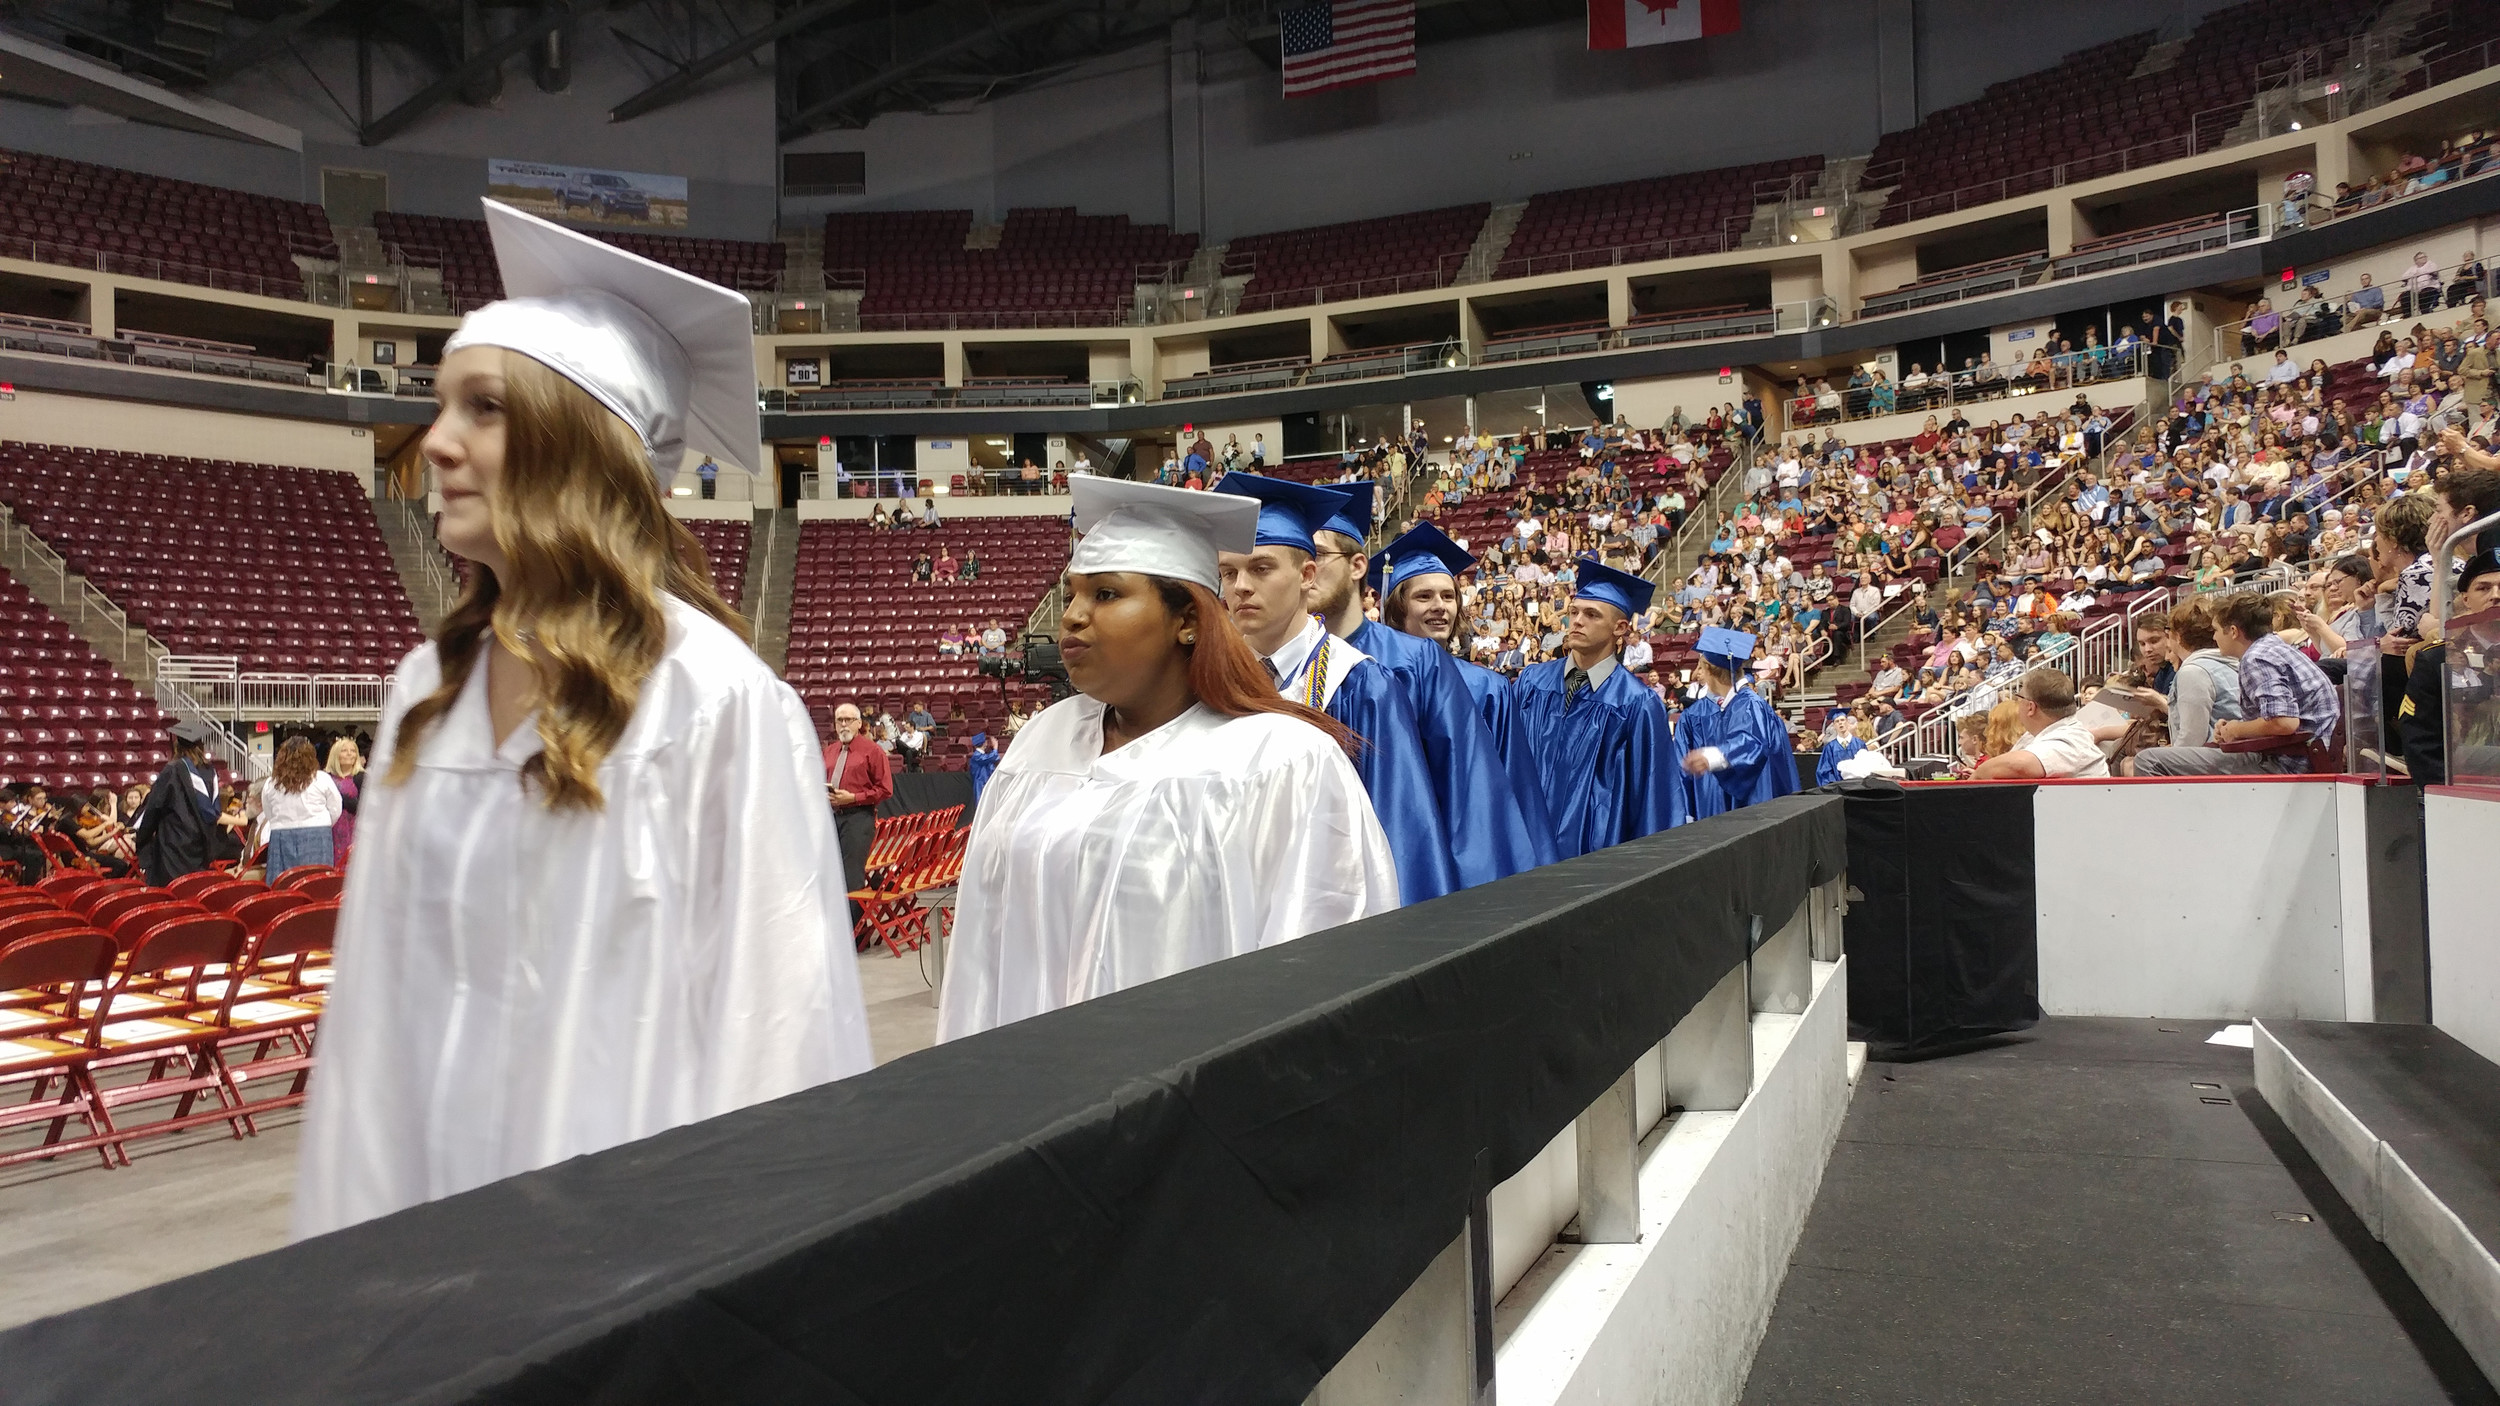 Graduates enter the arena for the start of graduation.